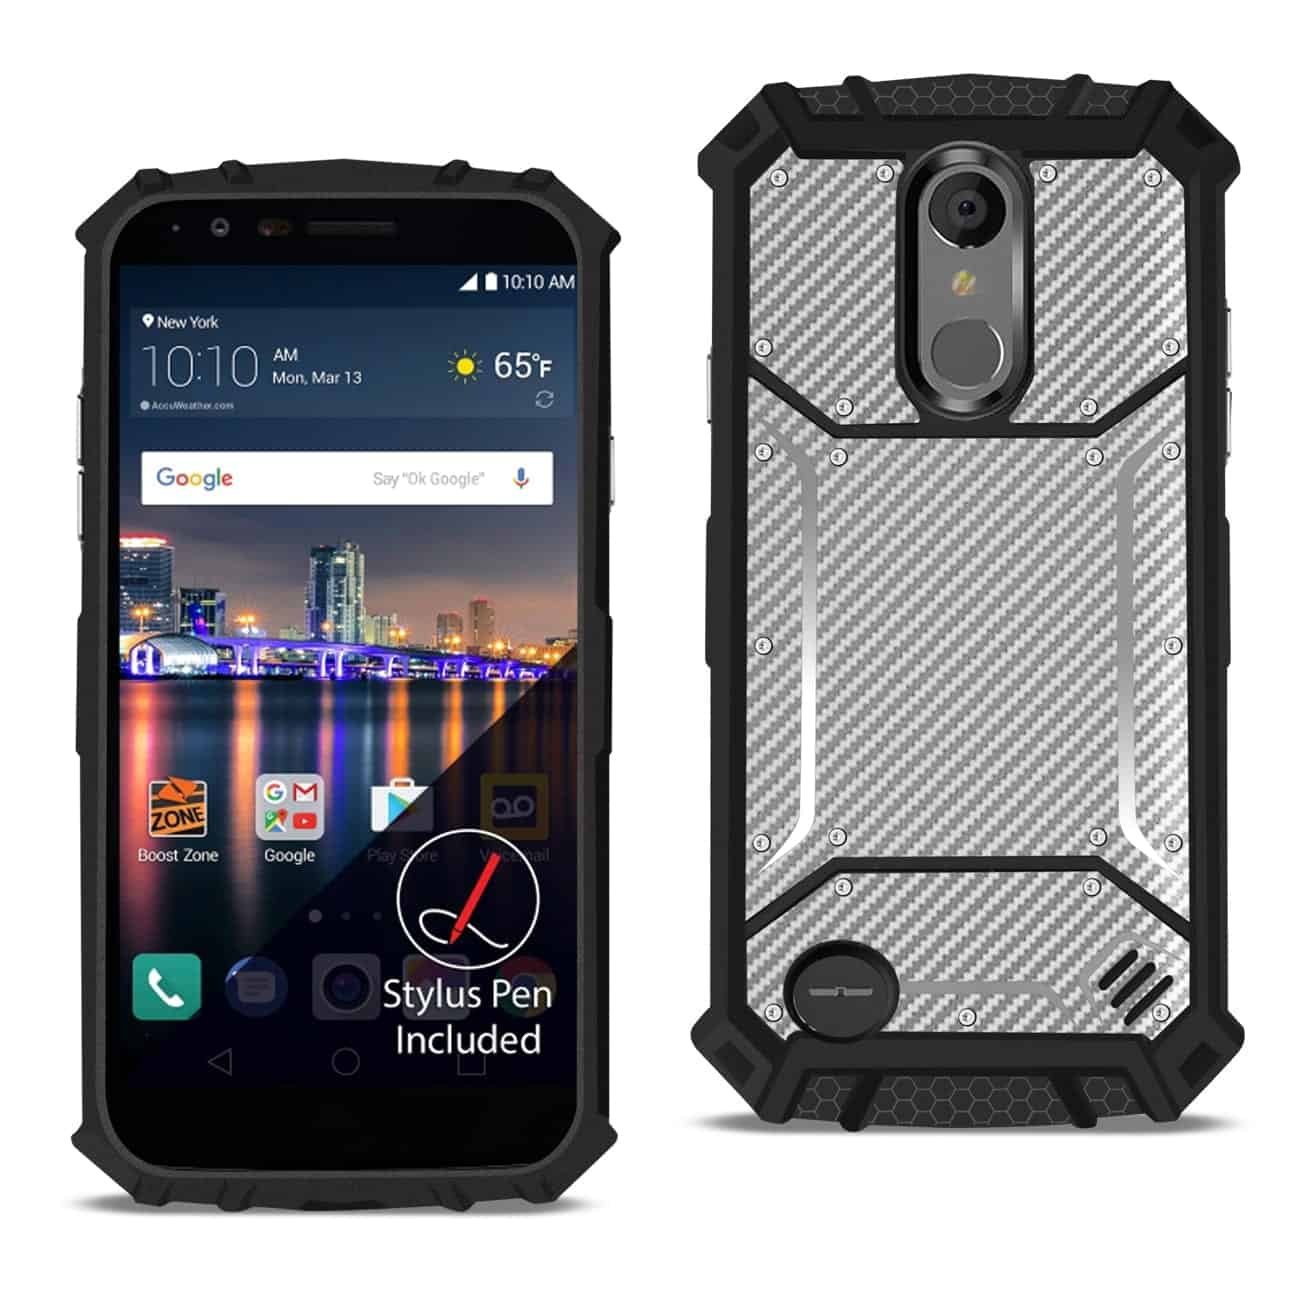 LG ARISTO 3 Carbon Fiber Hard-shell Case In Gray